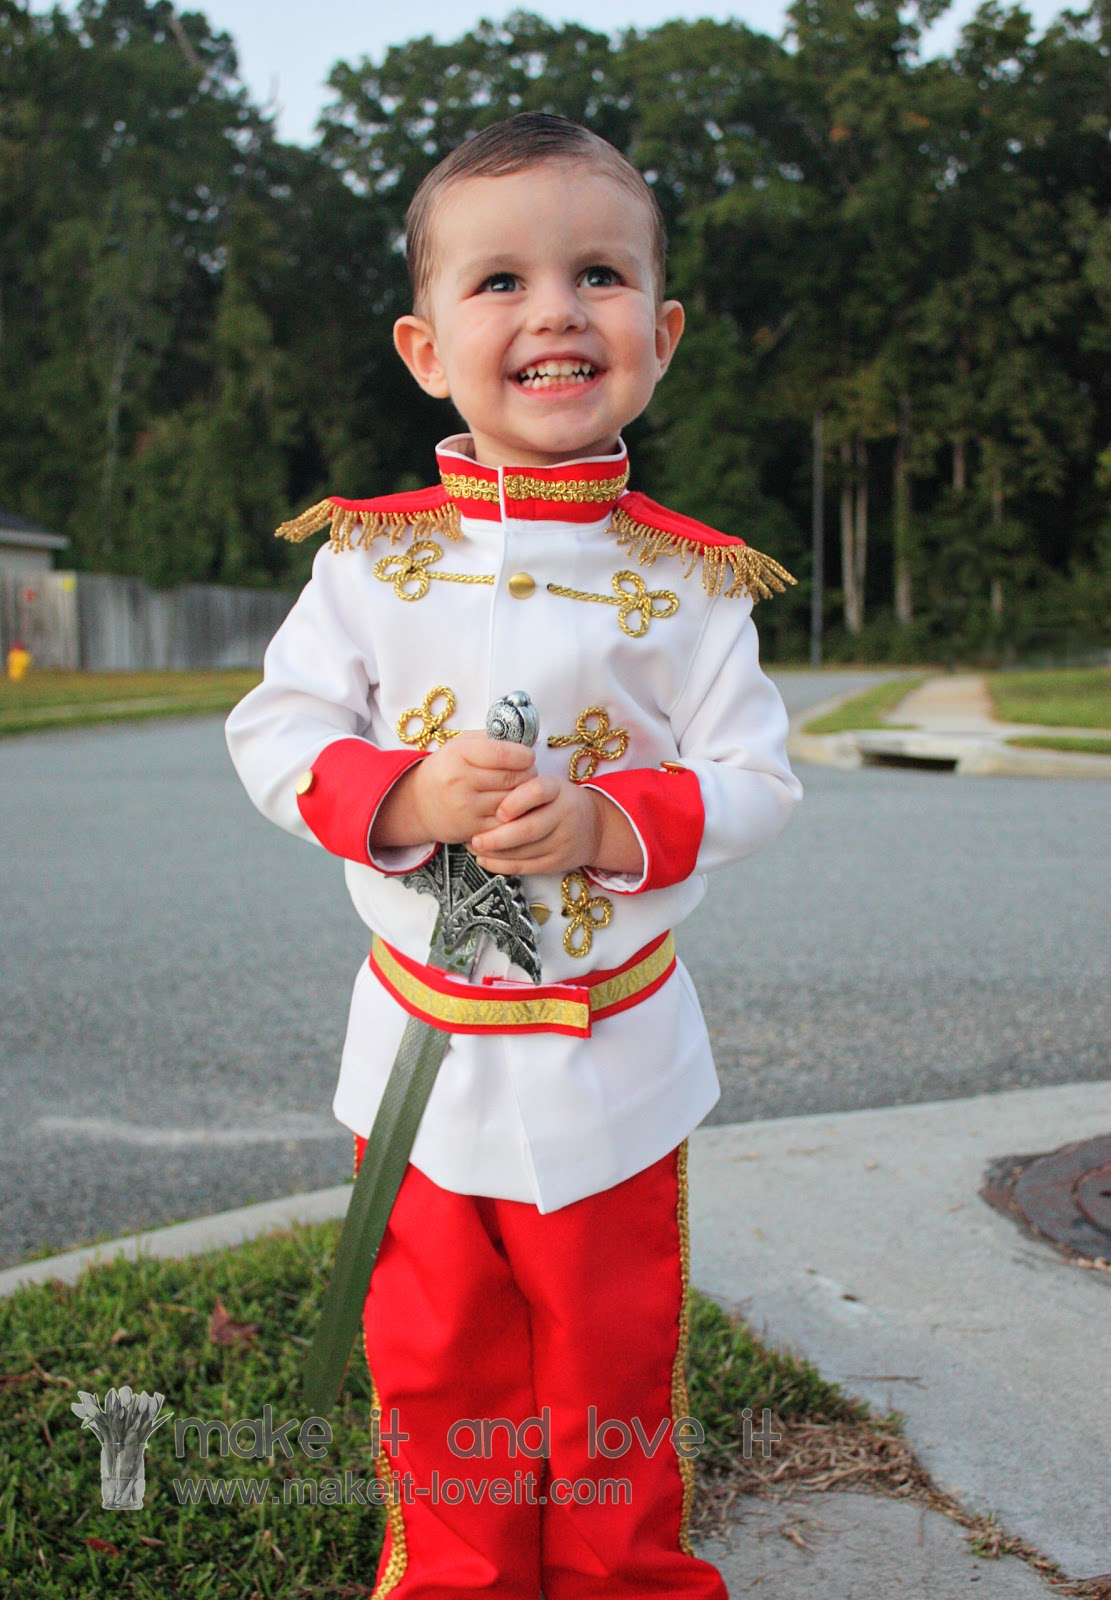 prince charming costume tutorial from cinderella